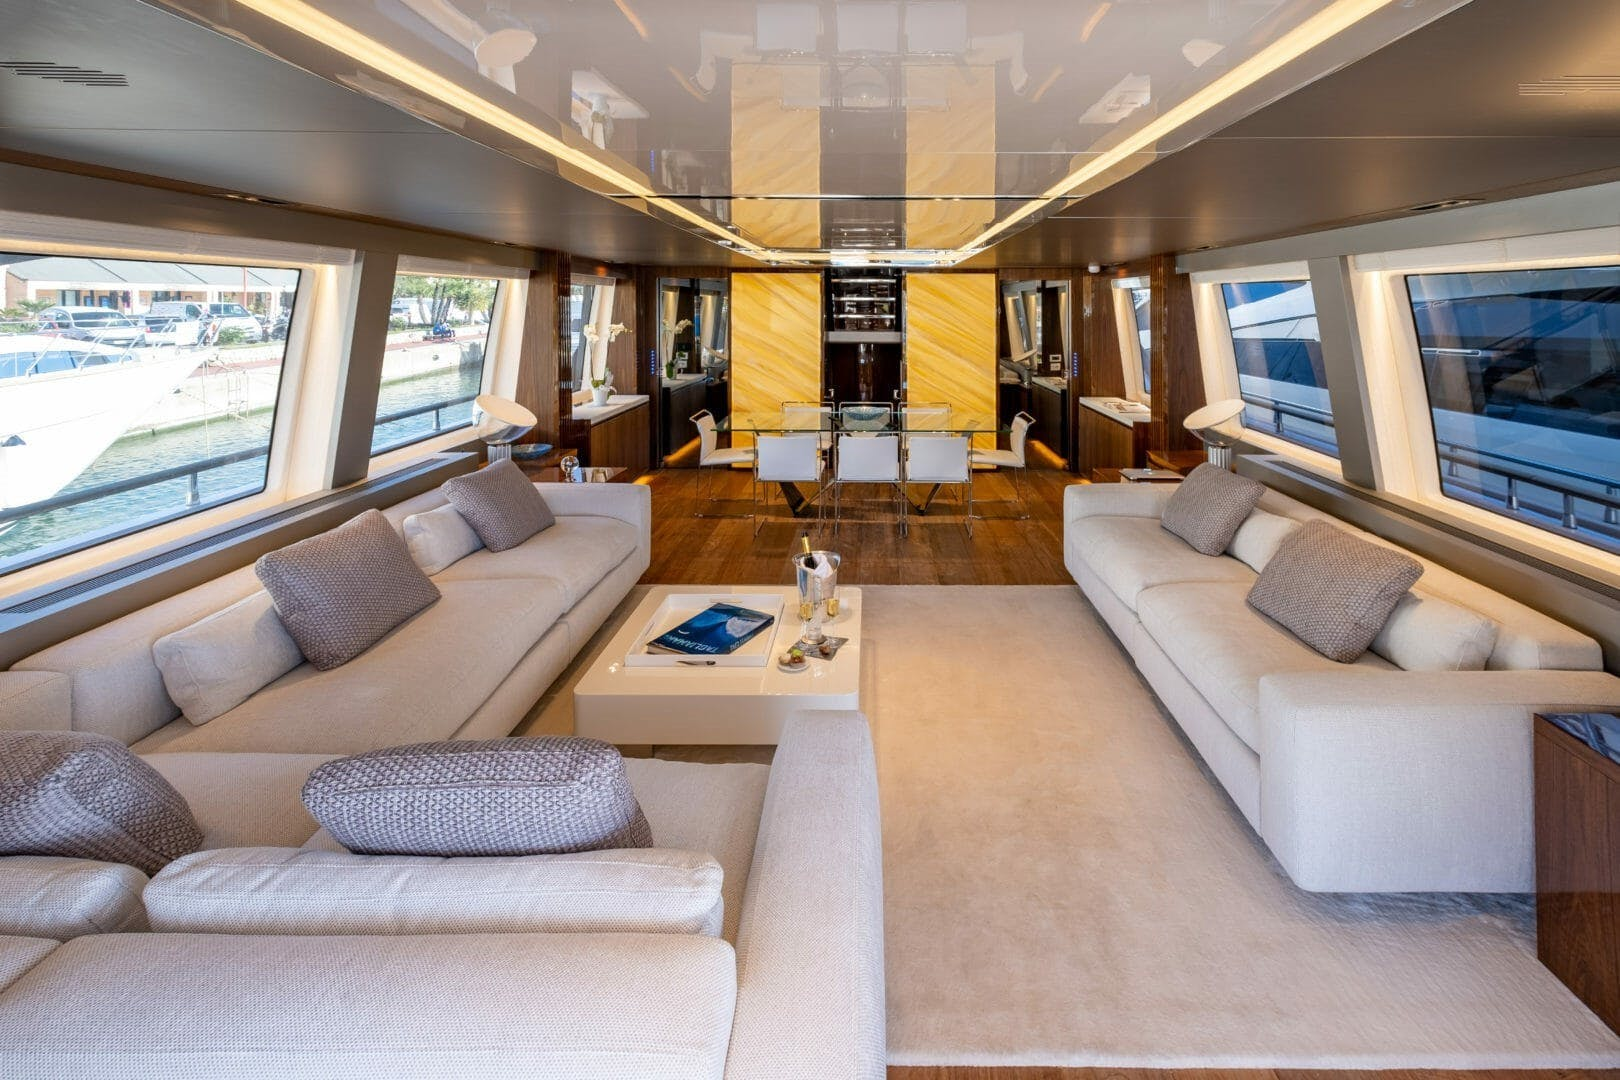 2019 PerMare 100' Motor Yacht     Picture 1 of 20